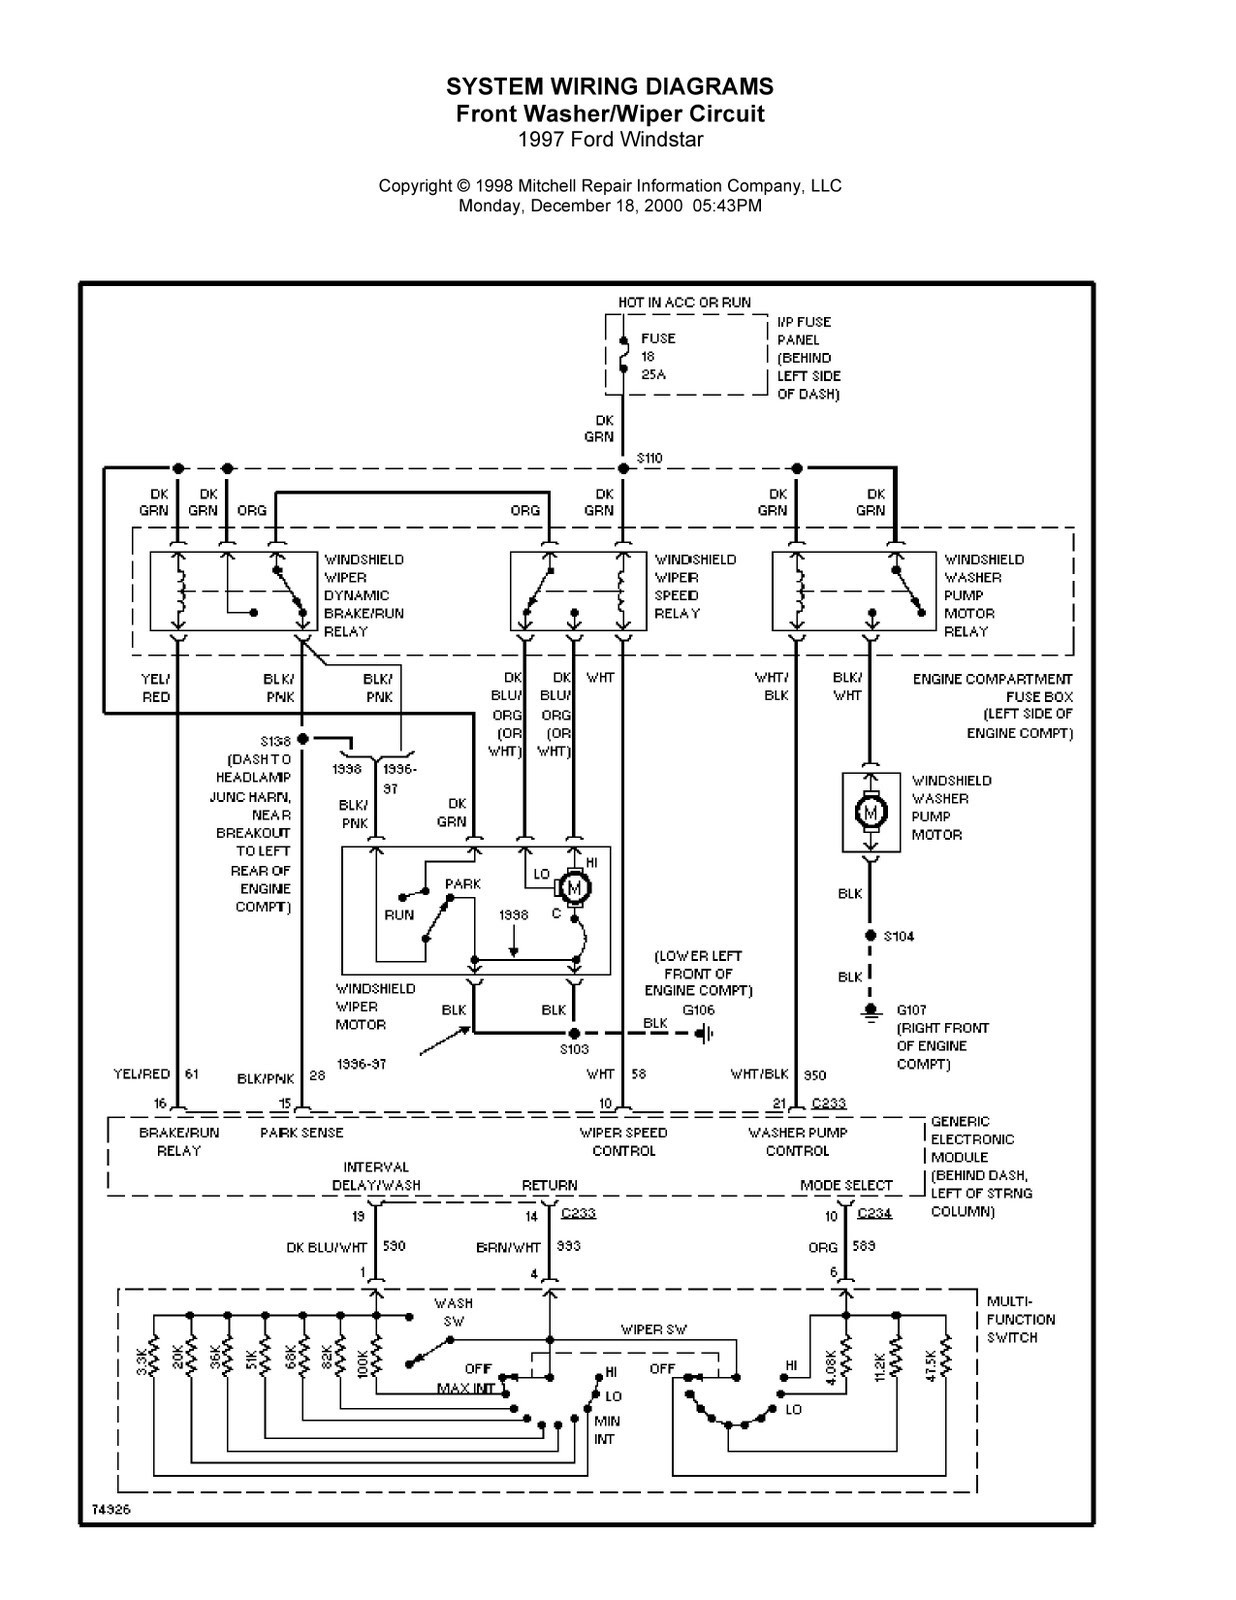 Complete System Wiring Diagrams 1997 Ford Windstar